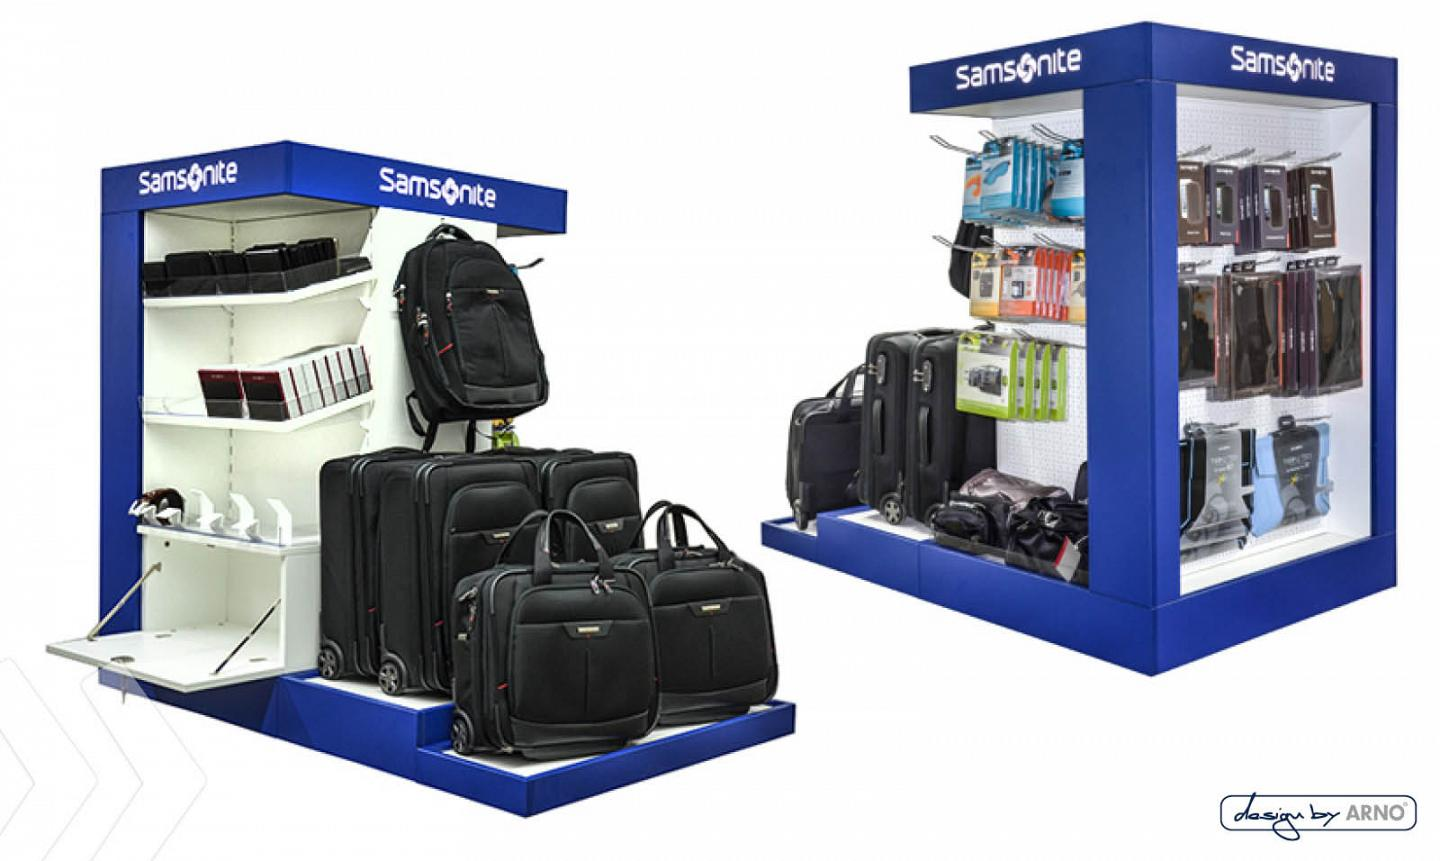 Samsonite Bodendisplay by ARNO Group 01